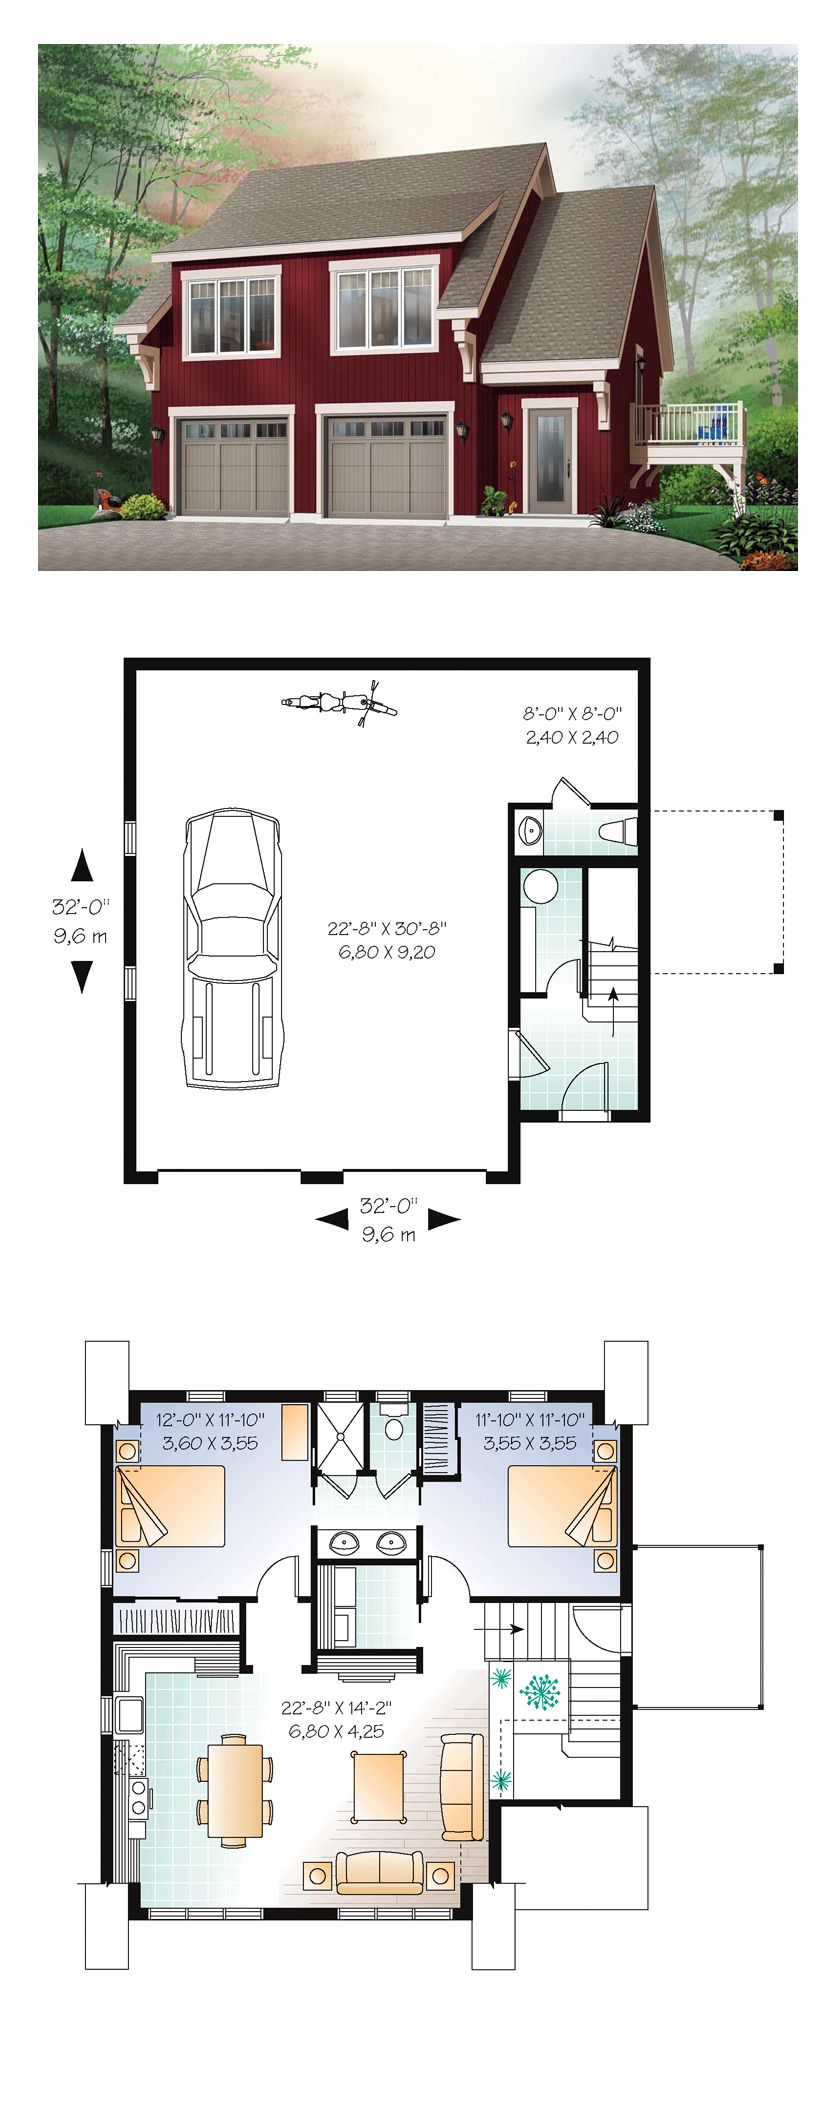 Garage Apartment Plan 64817 Total Living Area 1068 Sq Ft